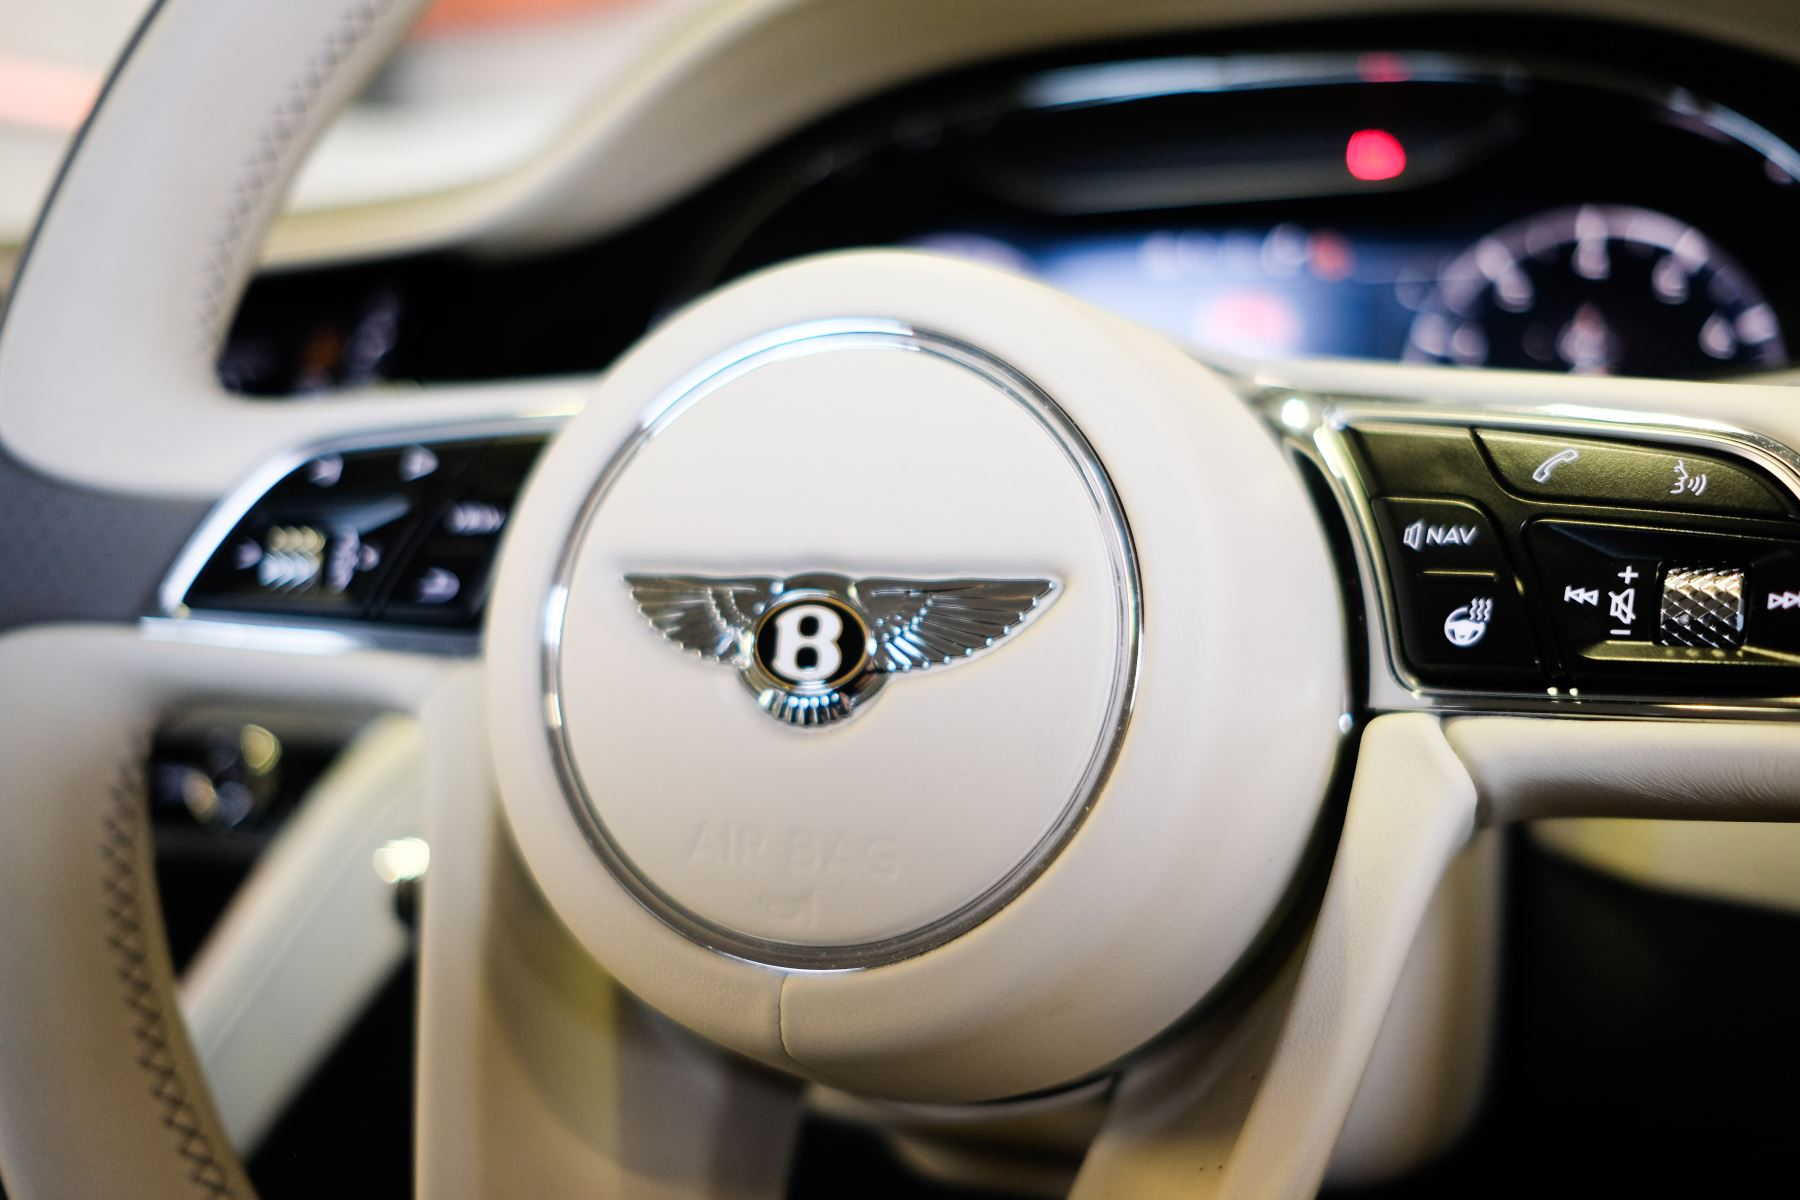 Bentley Continental GT 4.0 V8 - Mulliner Driving Specification with Black Painted Wheels - Touring and Centenary Spec image 55